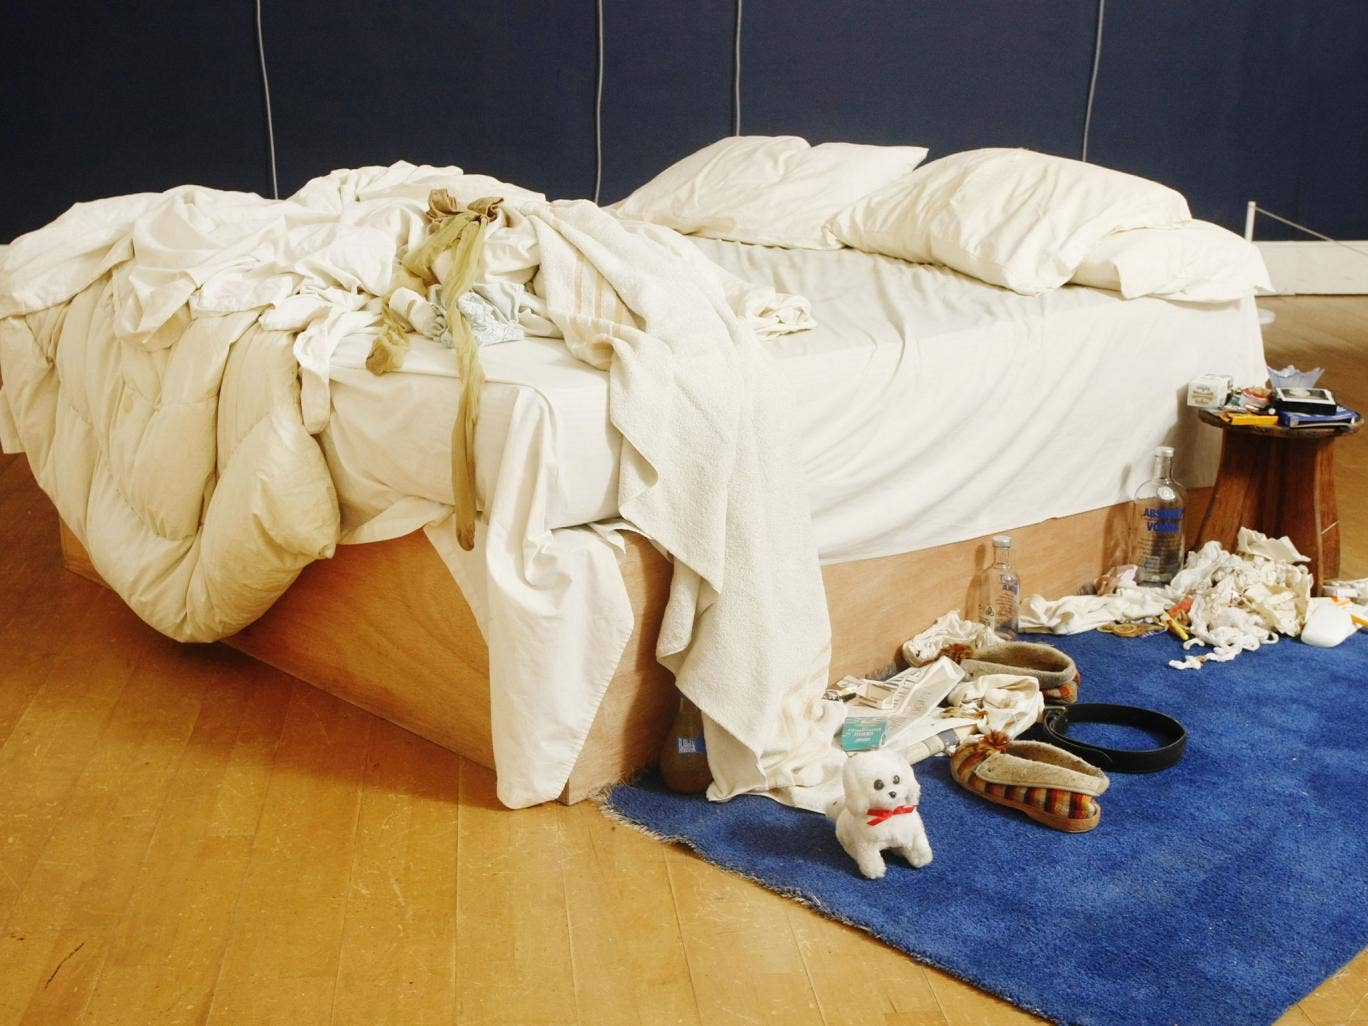 Tracy Emin's 'My Bed' was initially sold to Charles Saatchi for a reported £150,000